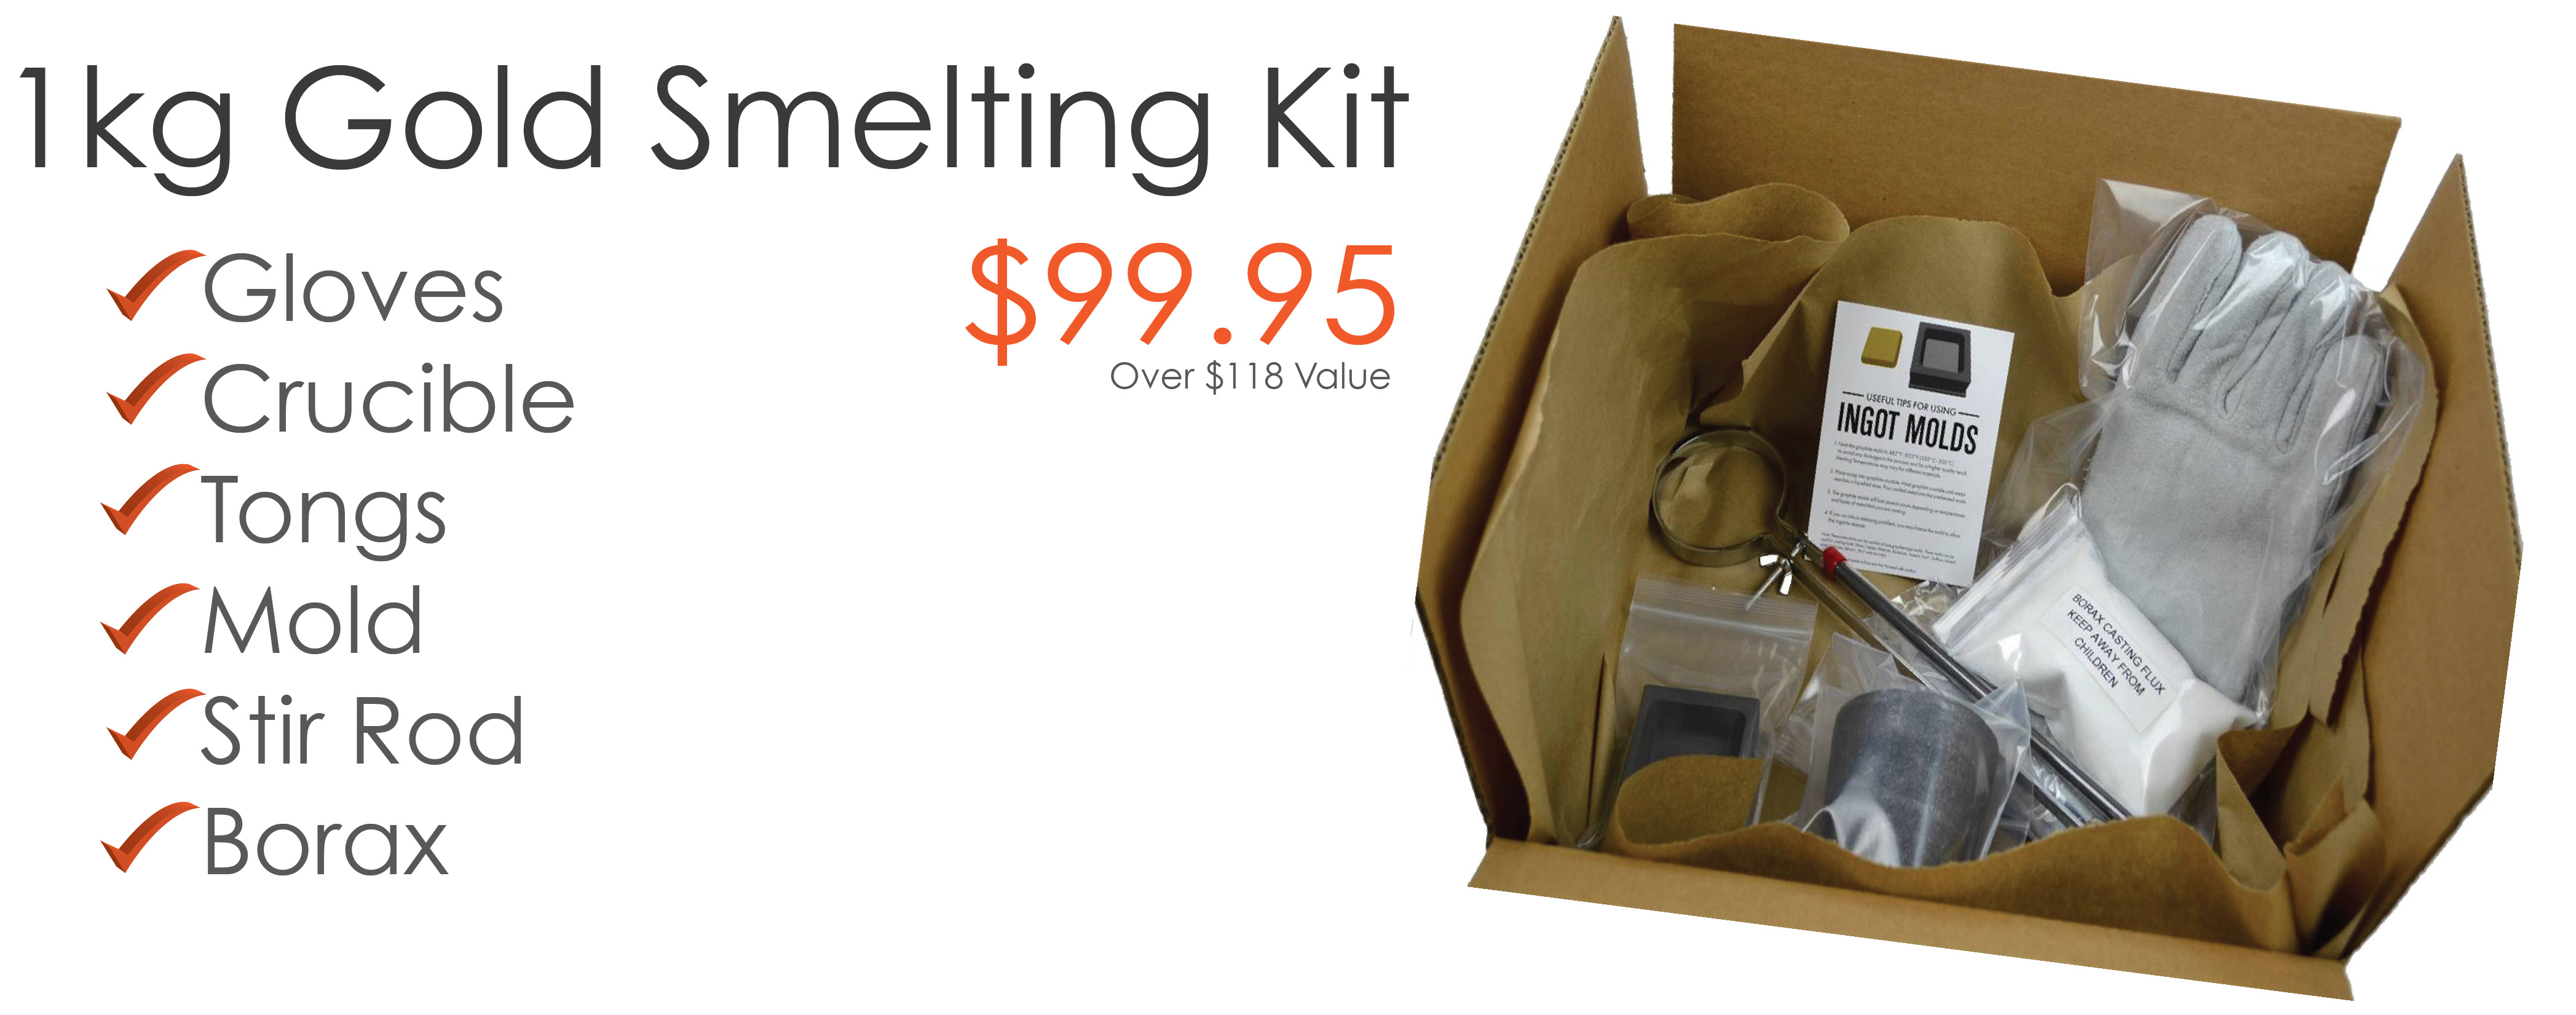 Gold Smelting Kits